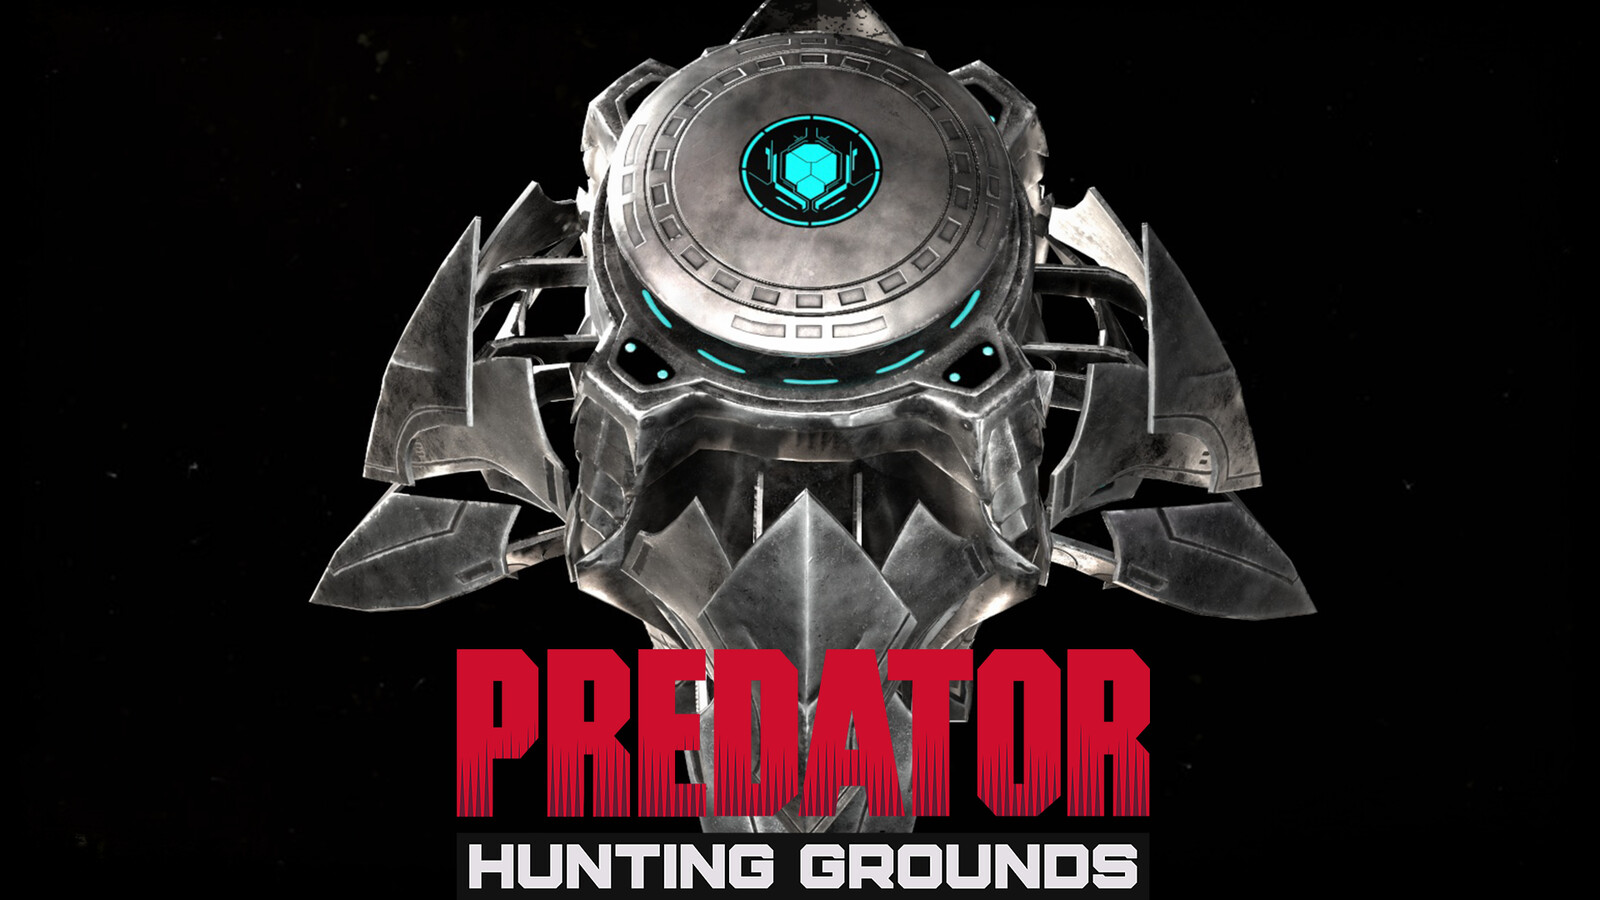 Predators Motion detector